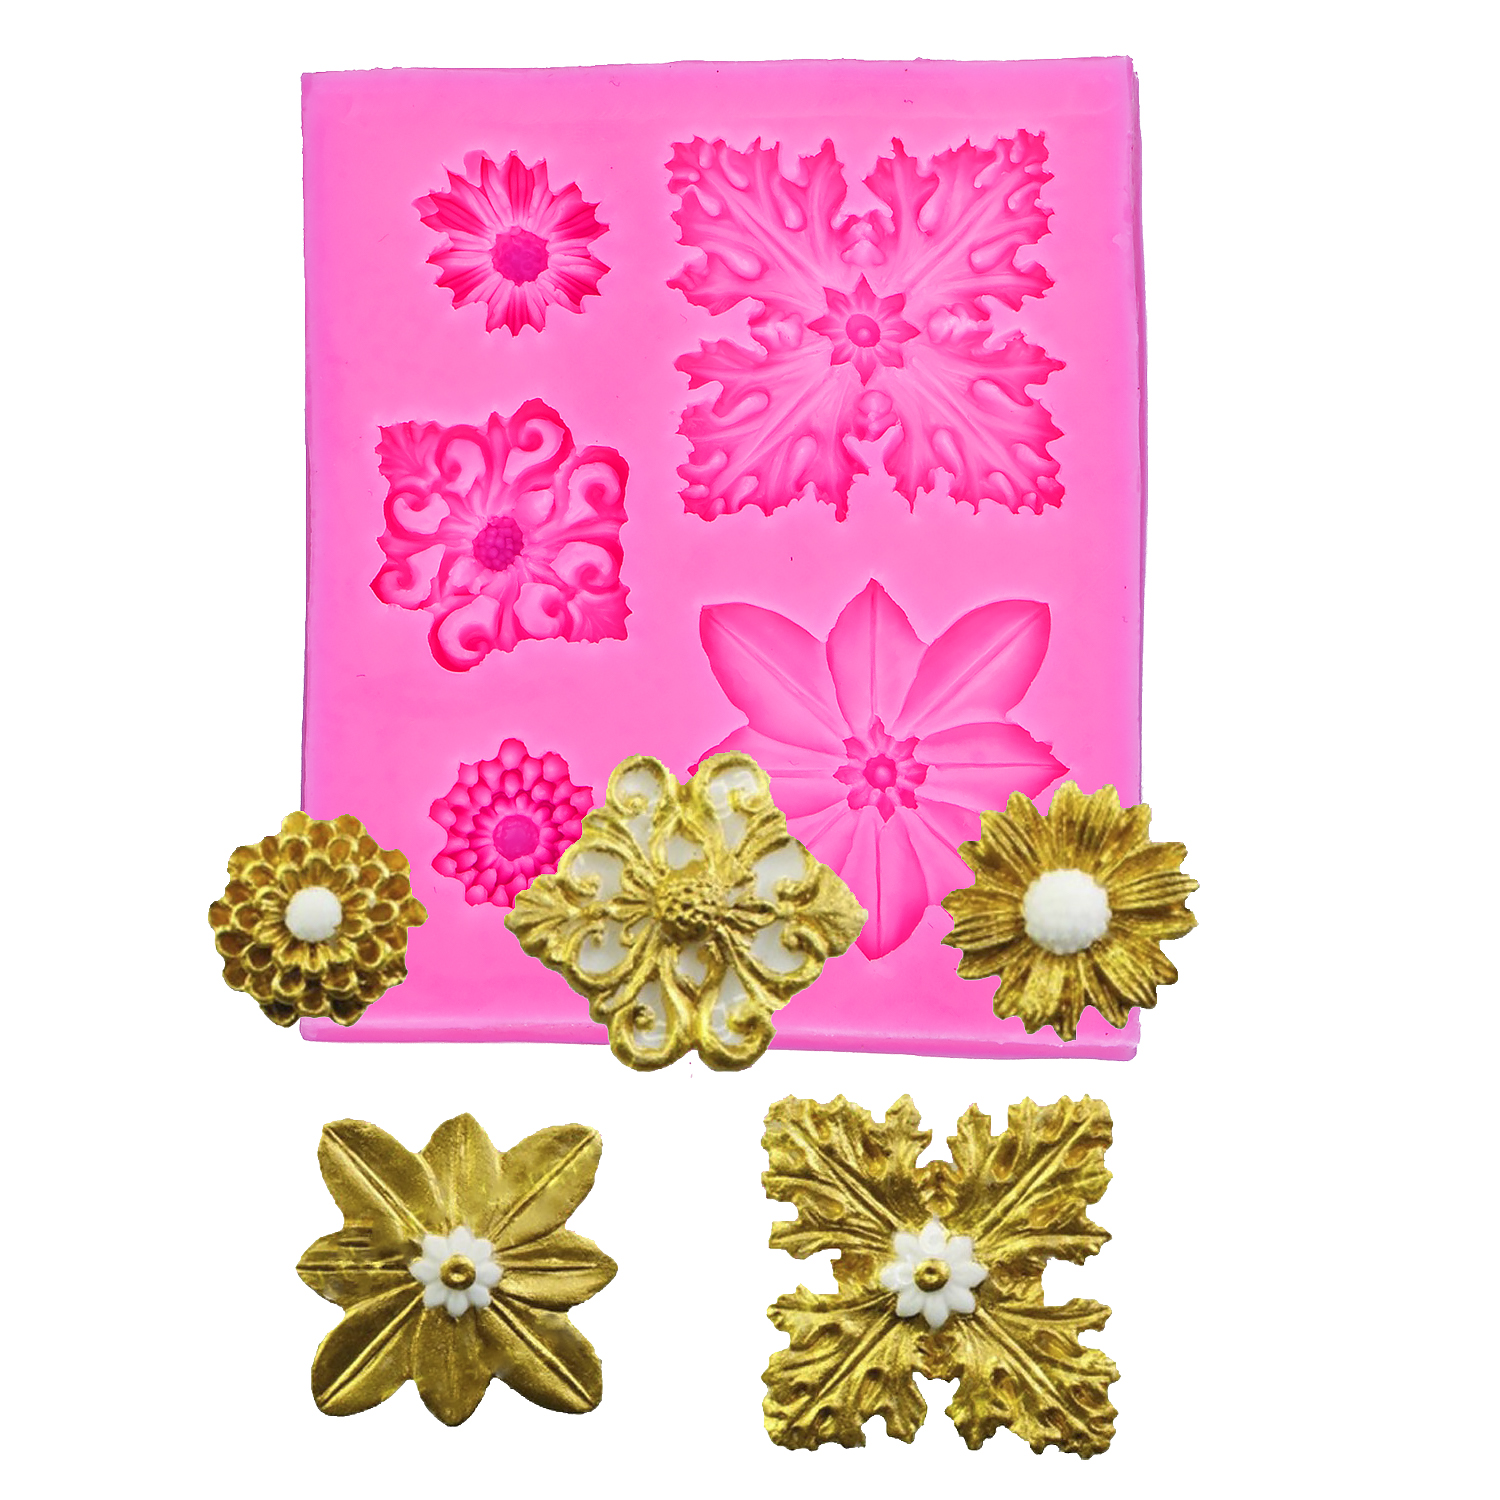 Flower shaped 3D Reverse sugar molding fondant cake silicone mold for fimo polymer clay molds decoration tools F11165